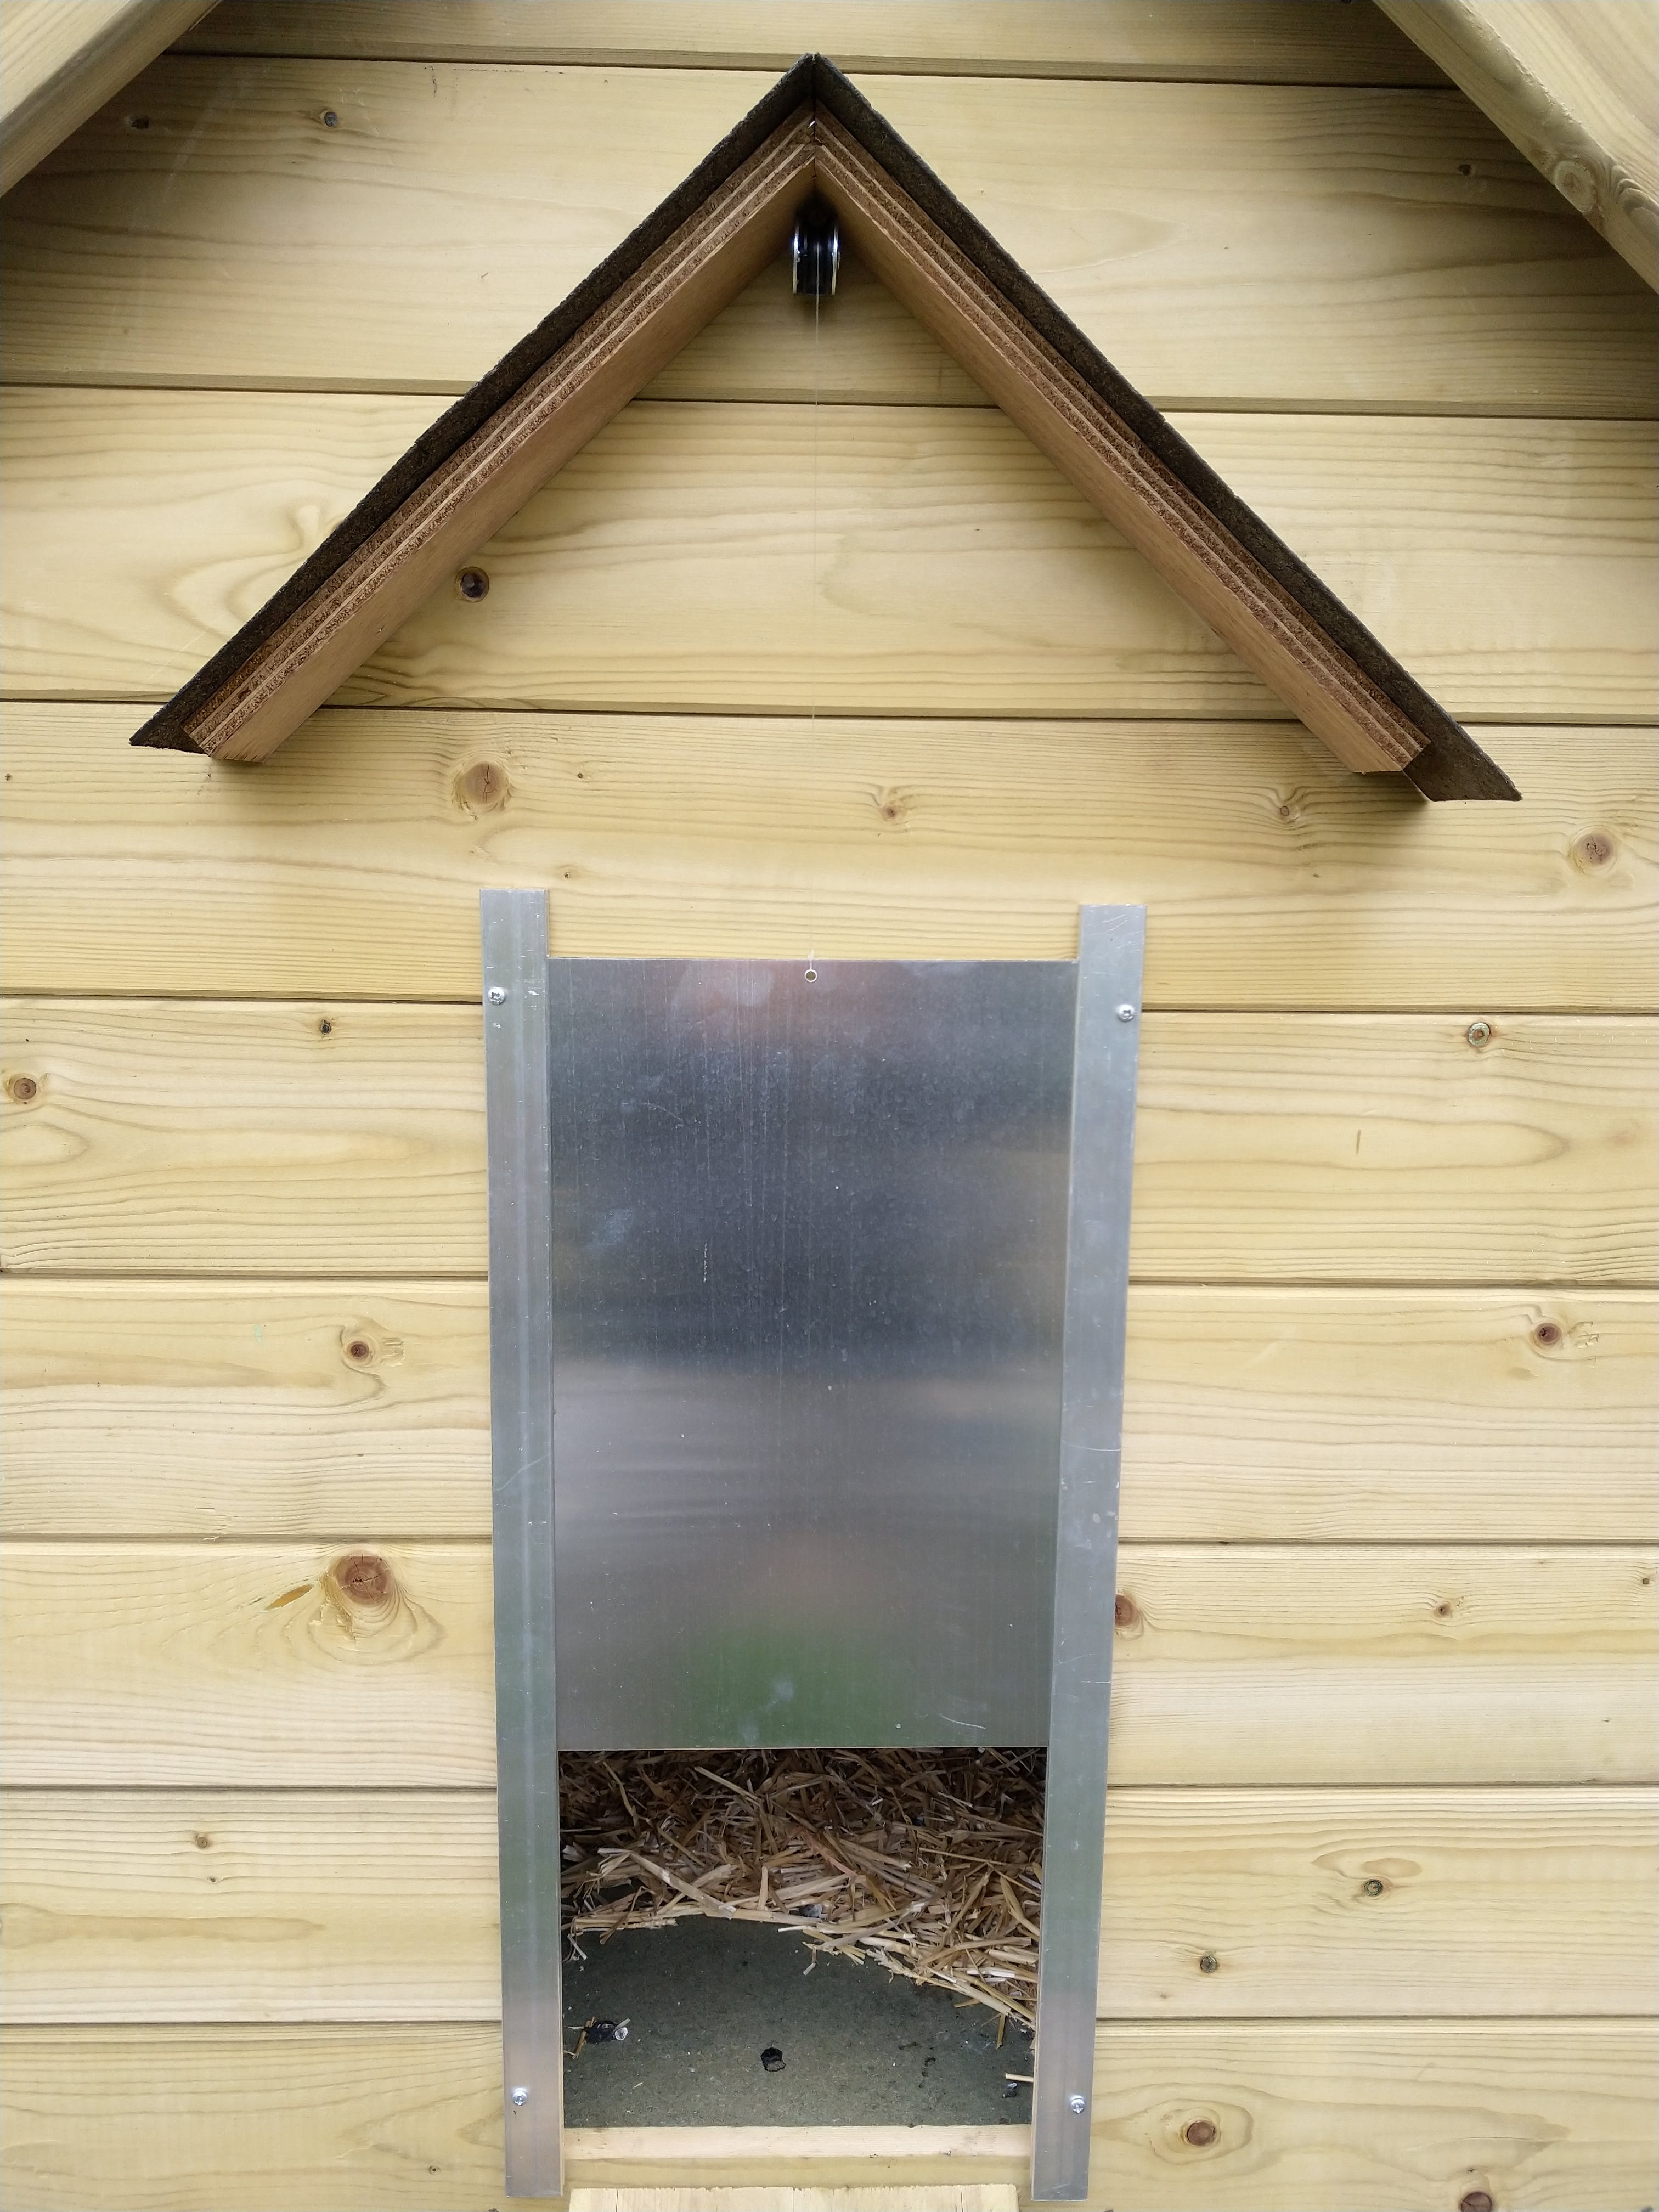 Alu door with pulley to guide nylon wire into the chicken coop. Can you spot the light sensor?